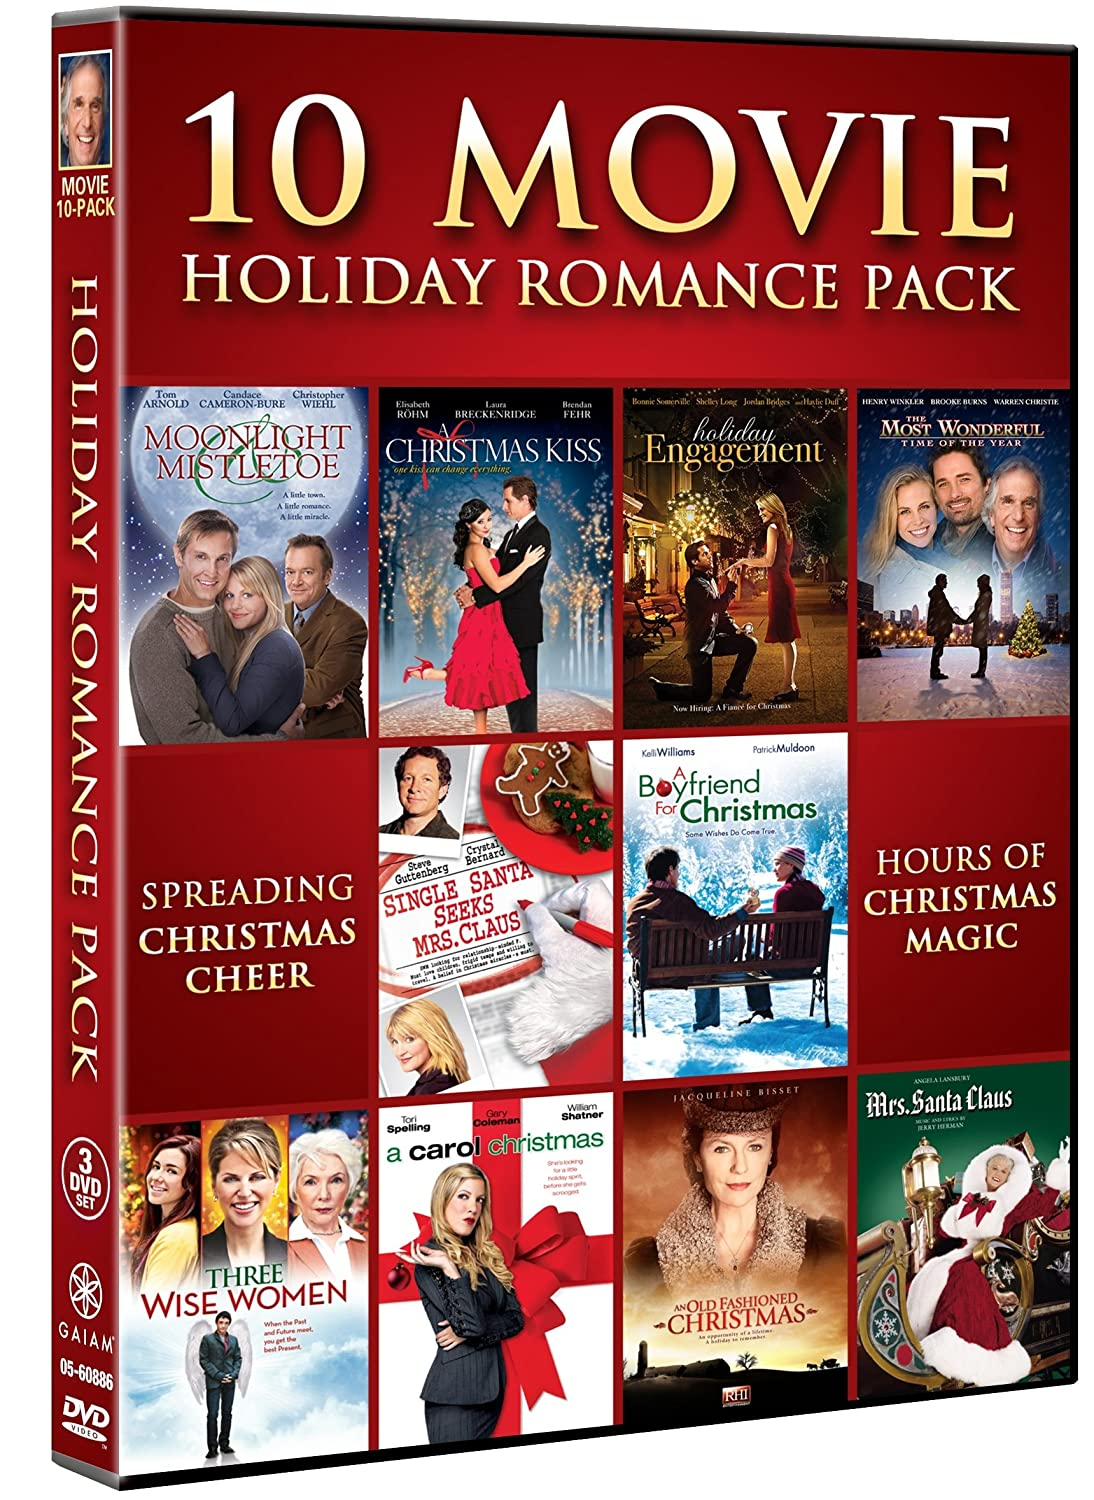 a holiday romance Free 2-day shipping on qualified orders over $35 buy 10 movie holiday romance pack at walmartcom.